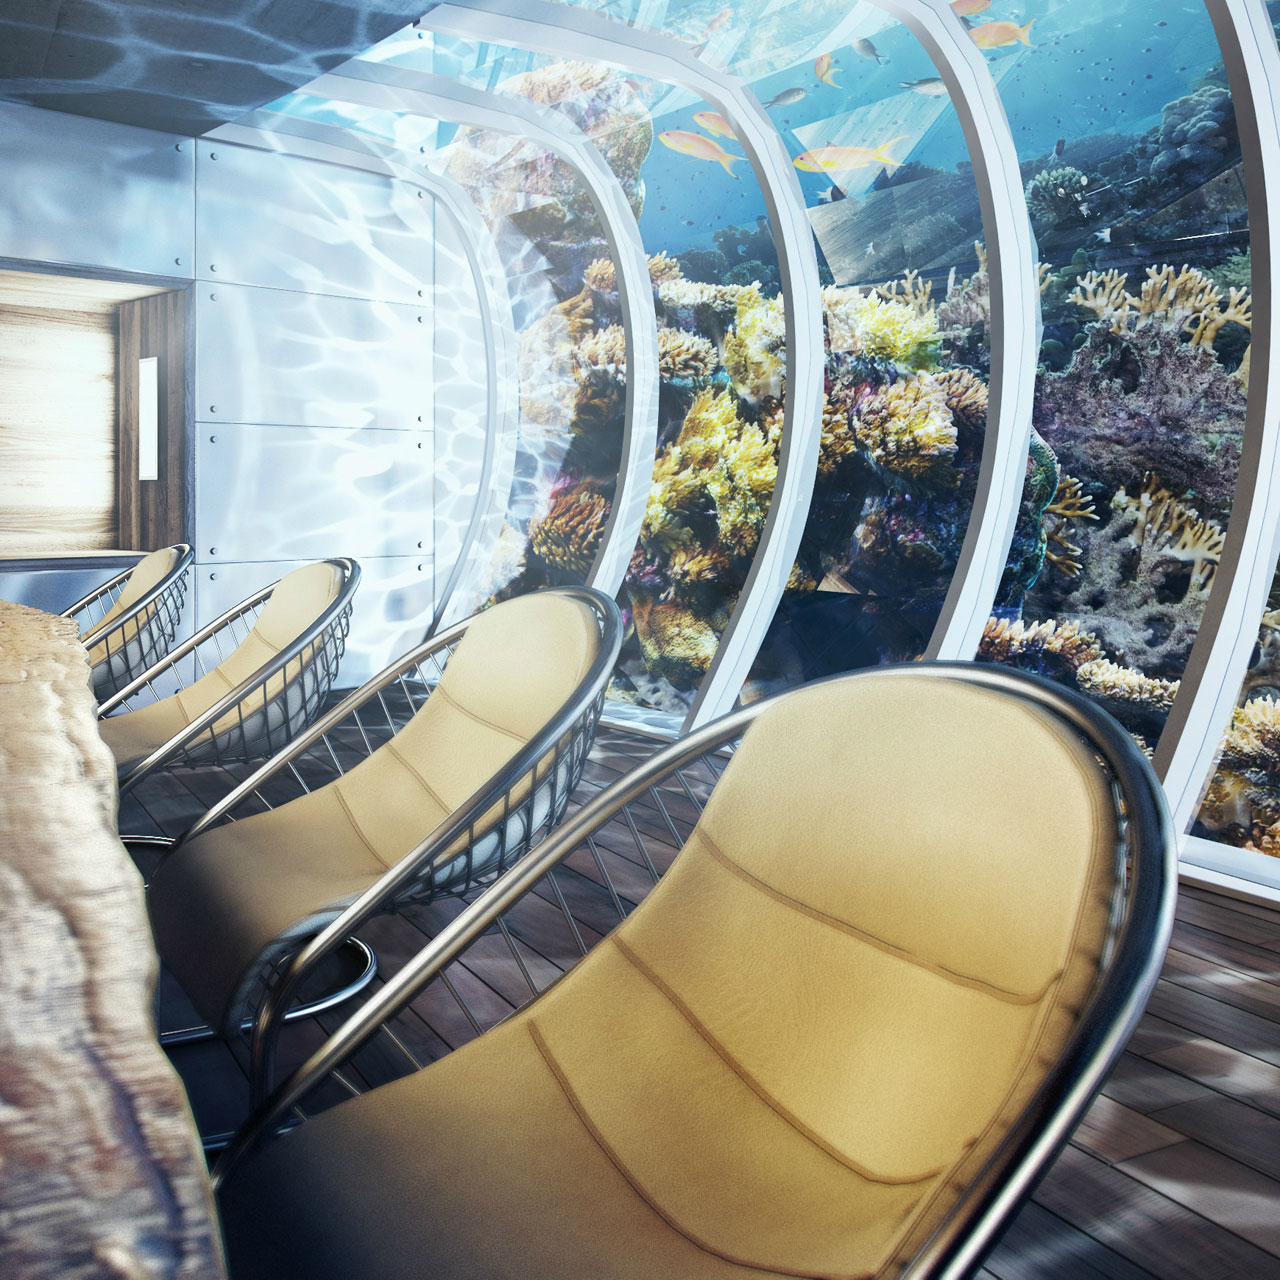 The Water Discus Underwater Hotel planned for Dubai (9)